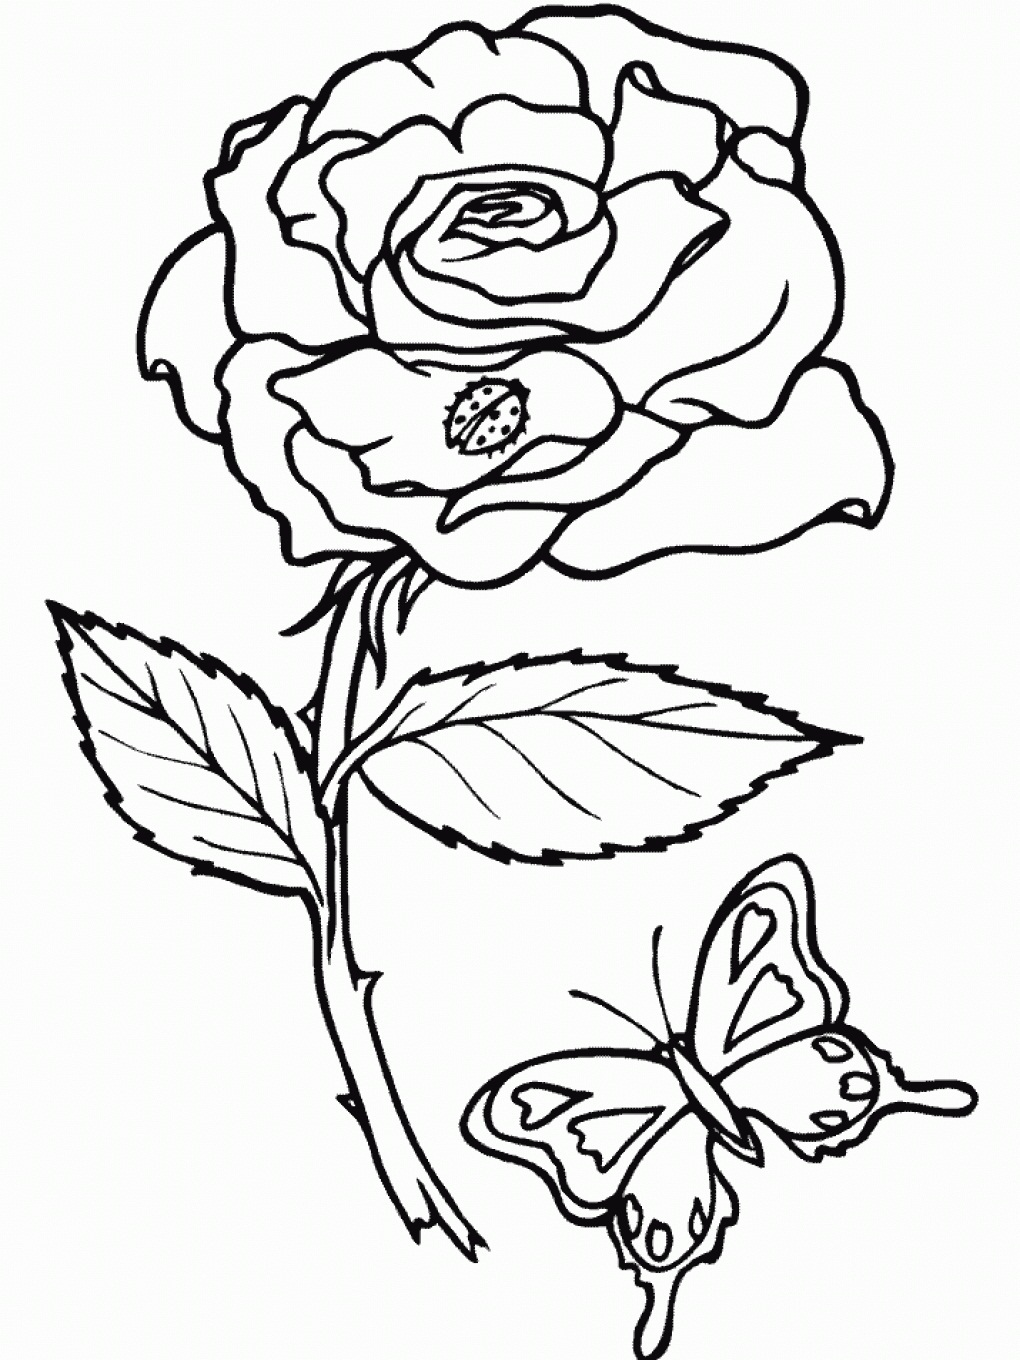 free coloring pages roses - Printable Coloring Pages Roses